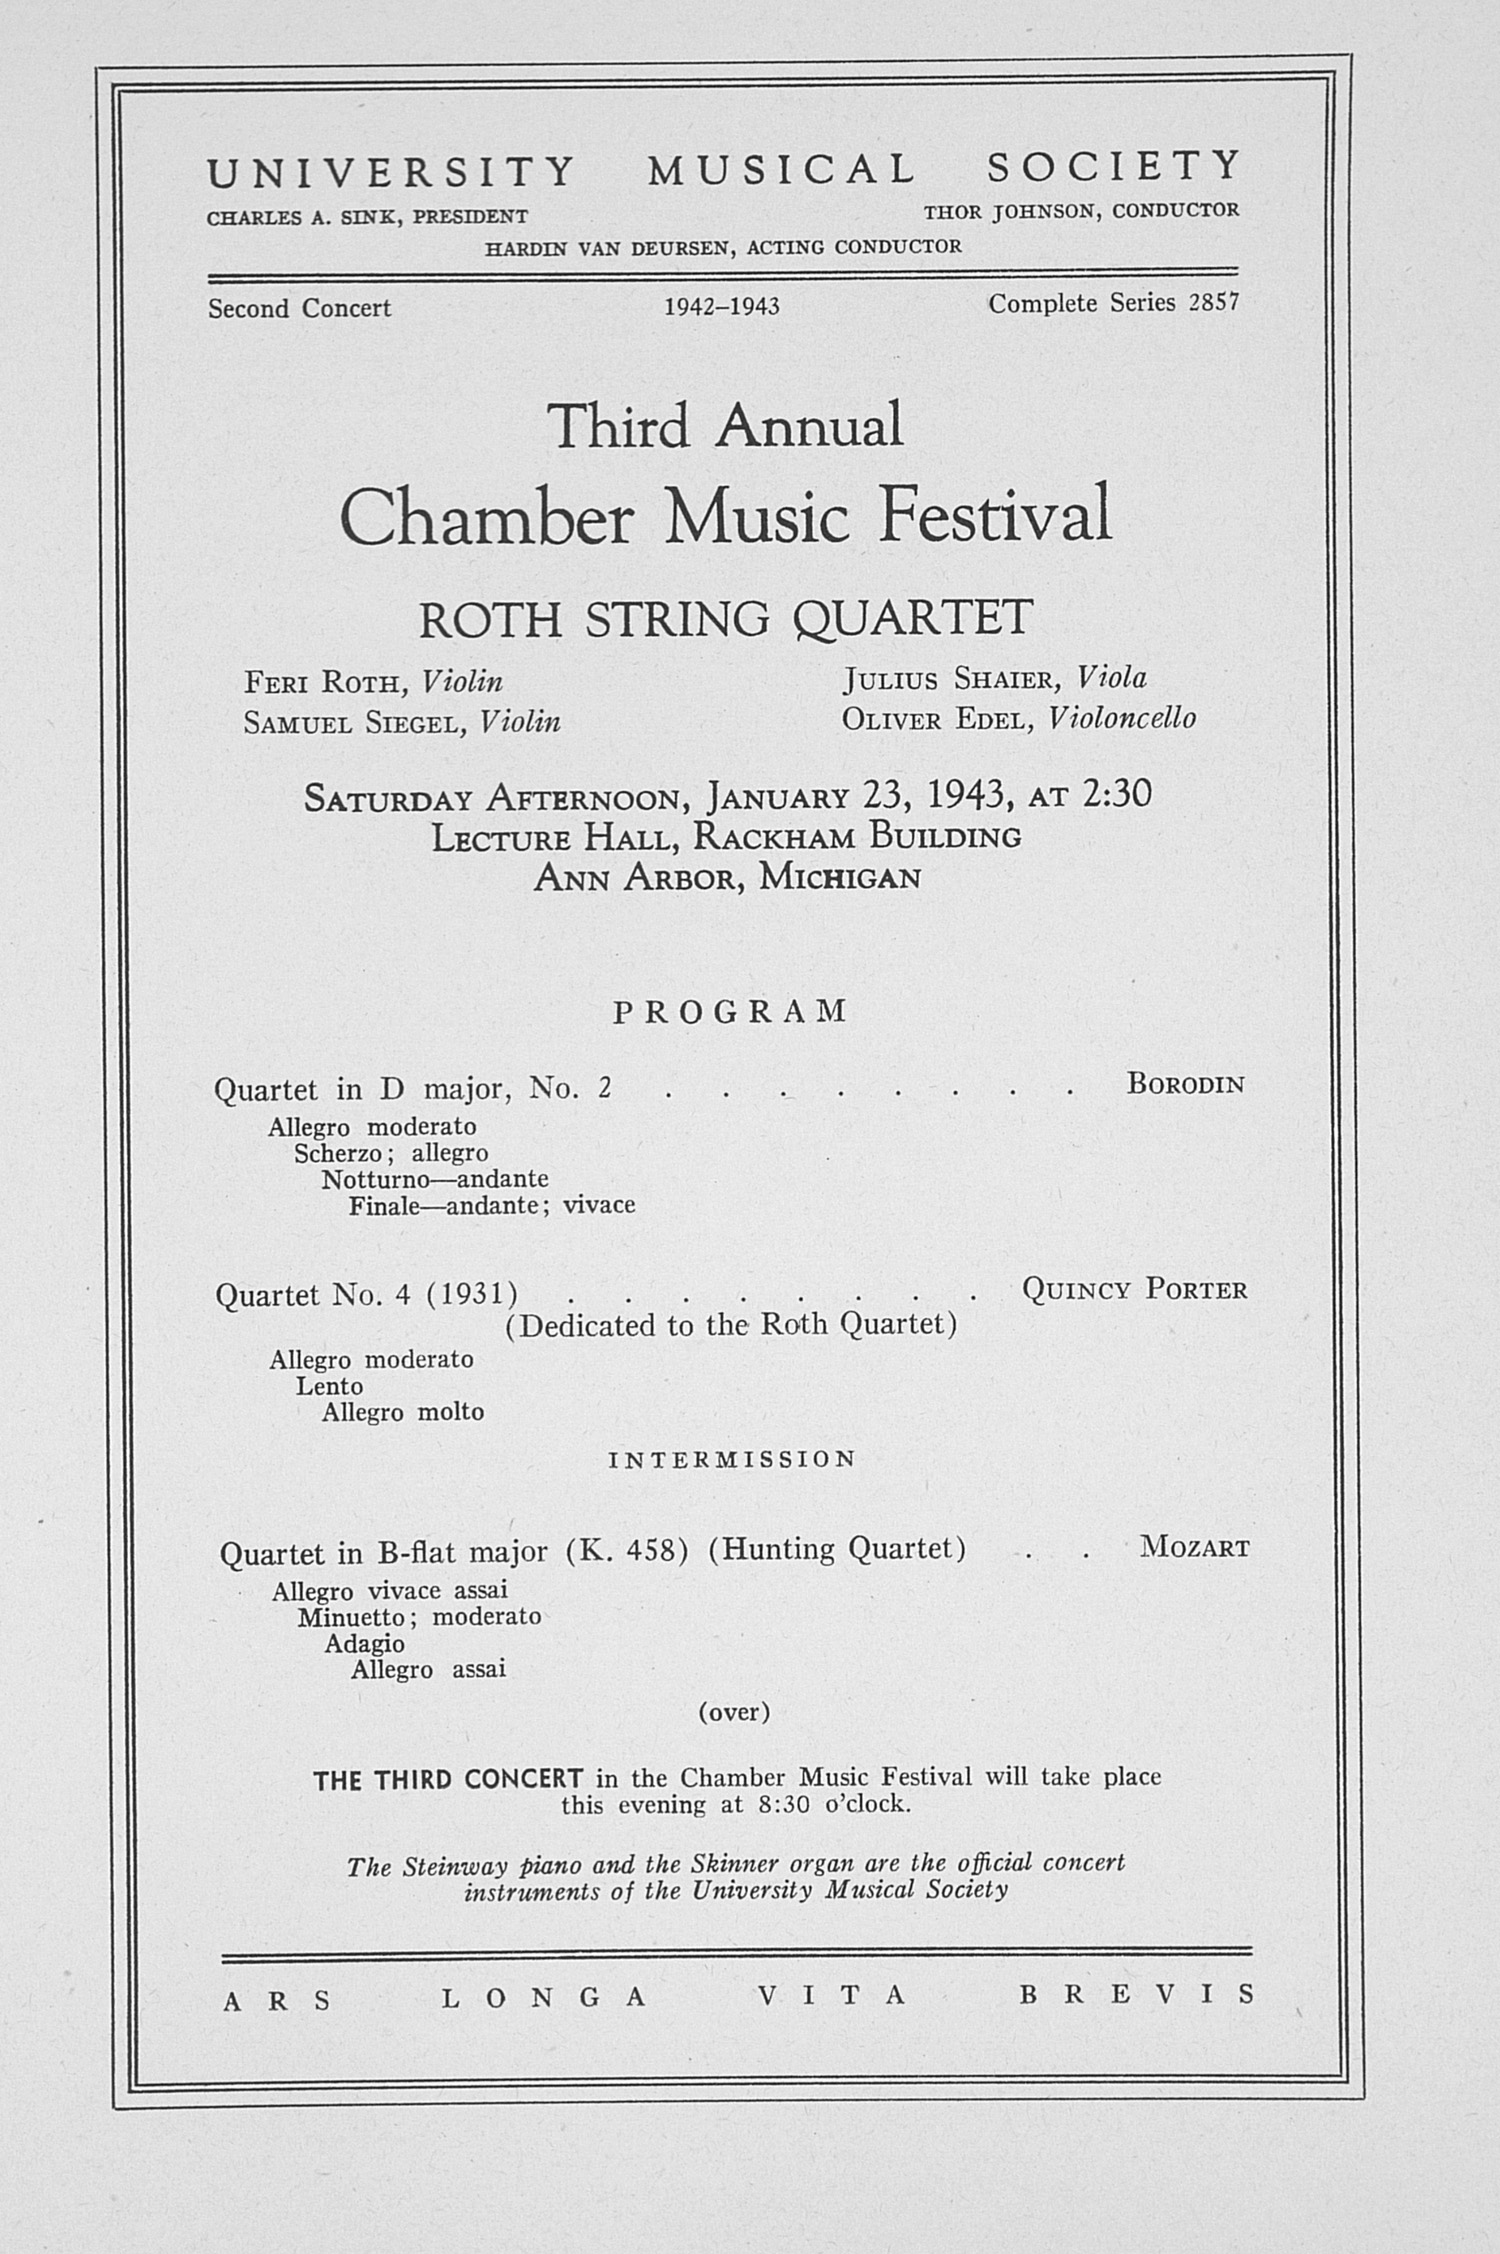 UMS Concert Program, January 23, 1943: Third Annual Chamber Music Festival -- Roth String Quartet image